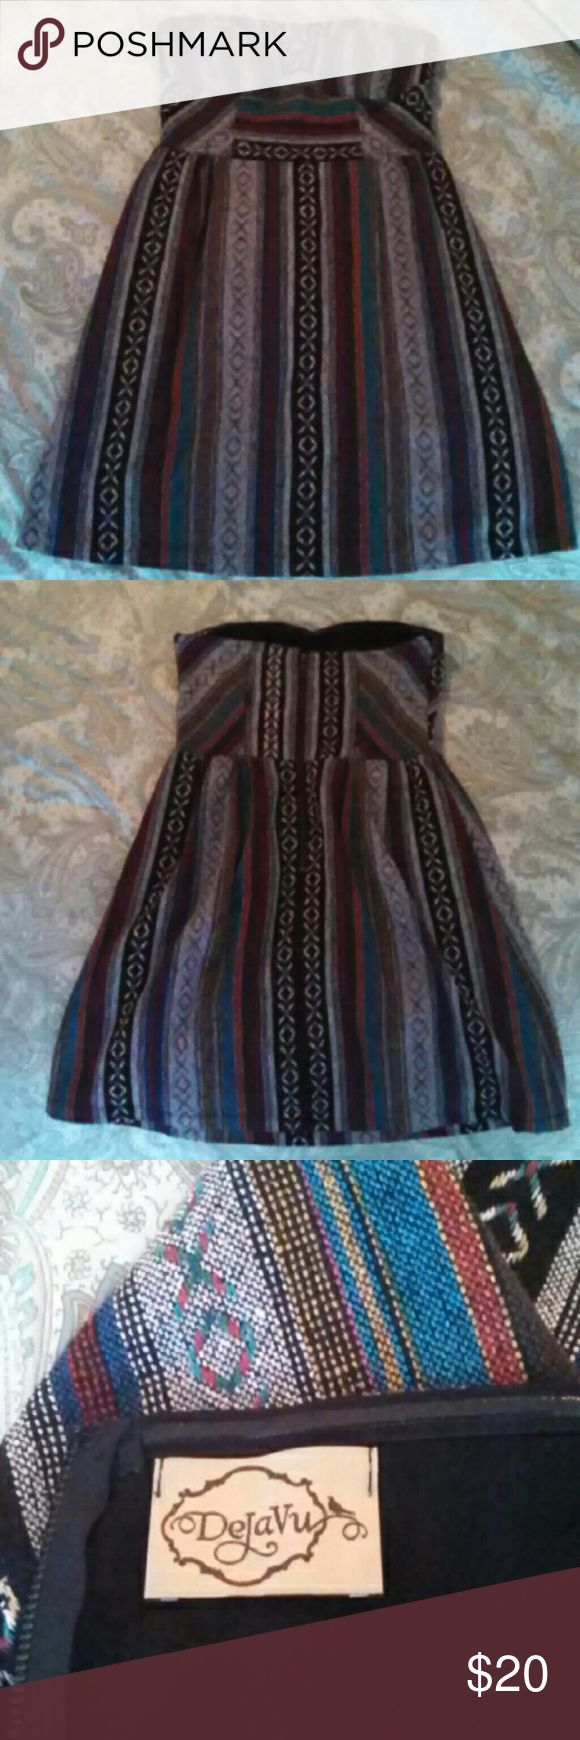 Cute Tribal Dress I love this little dress but it's a little small on me. It's in great condition! DejaVu Dresses Mini